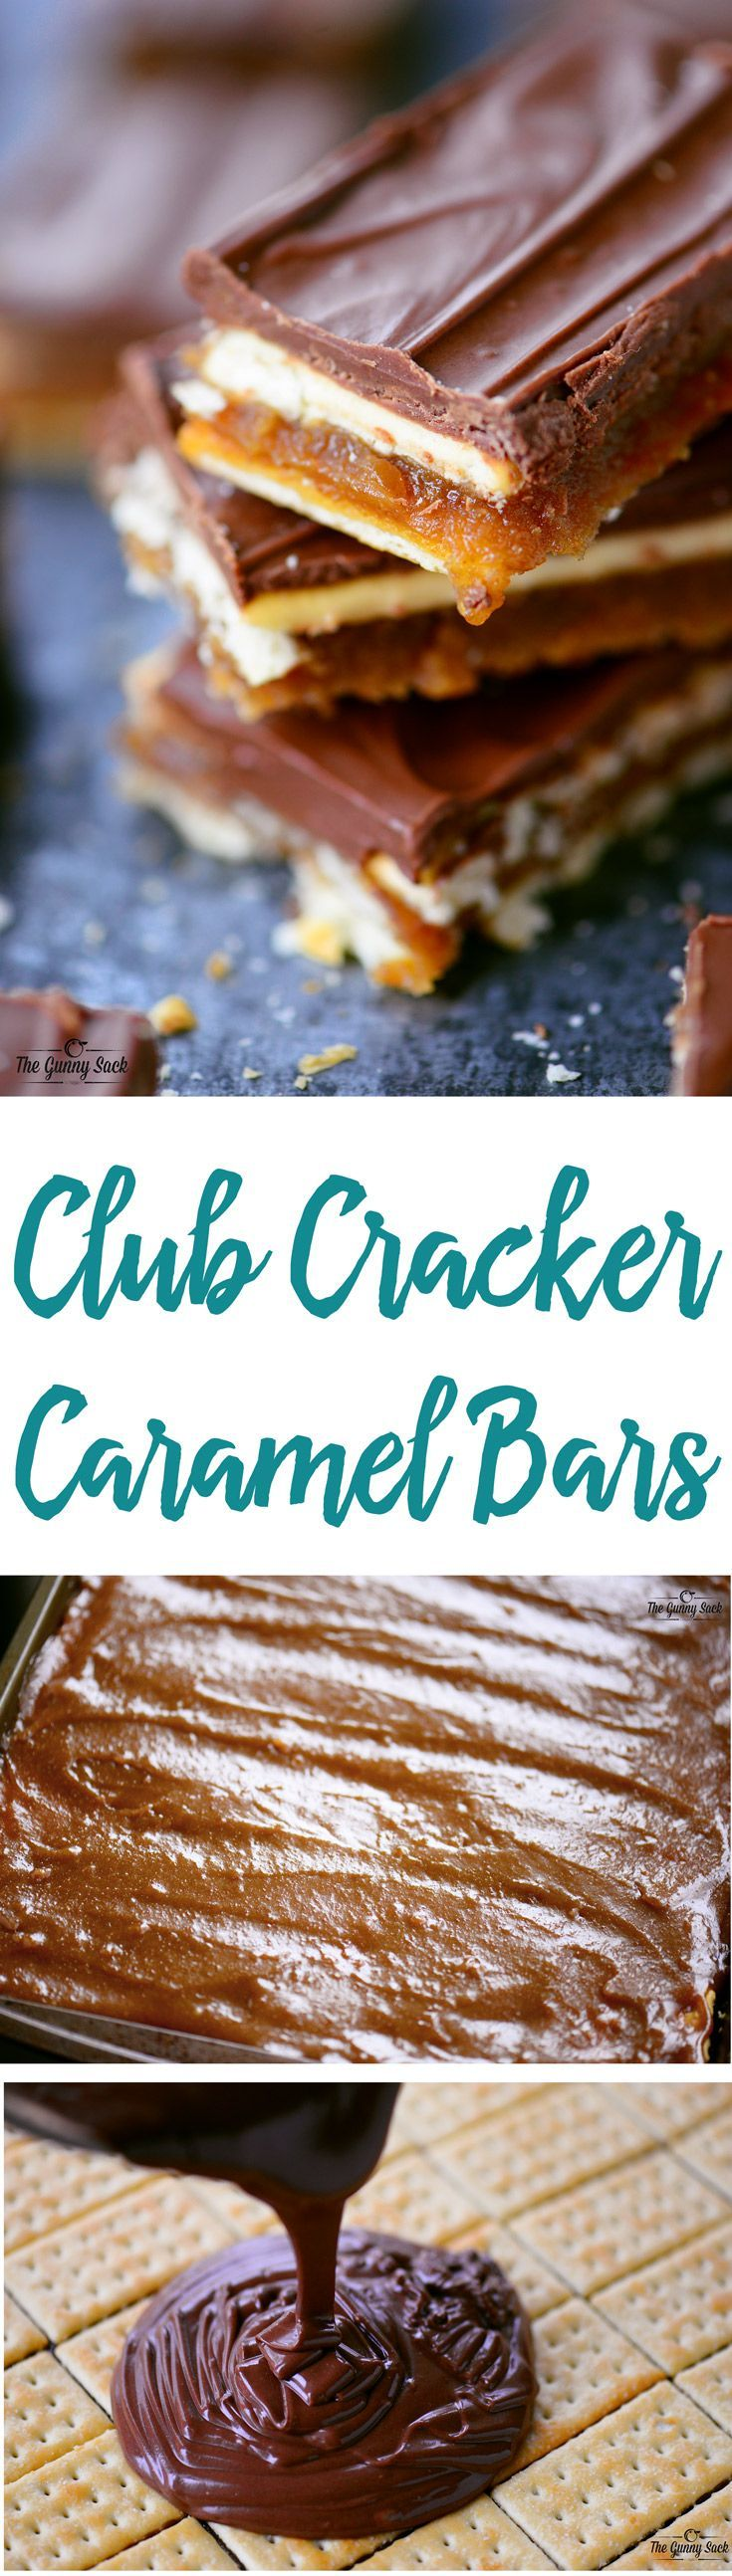 Try bringing these Club Cracker Caramel Bars to your next get together and watch them fly off the plate! They are simply irresistible!